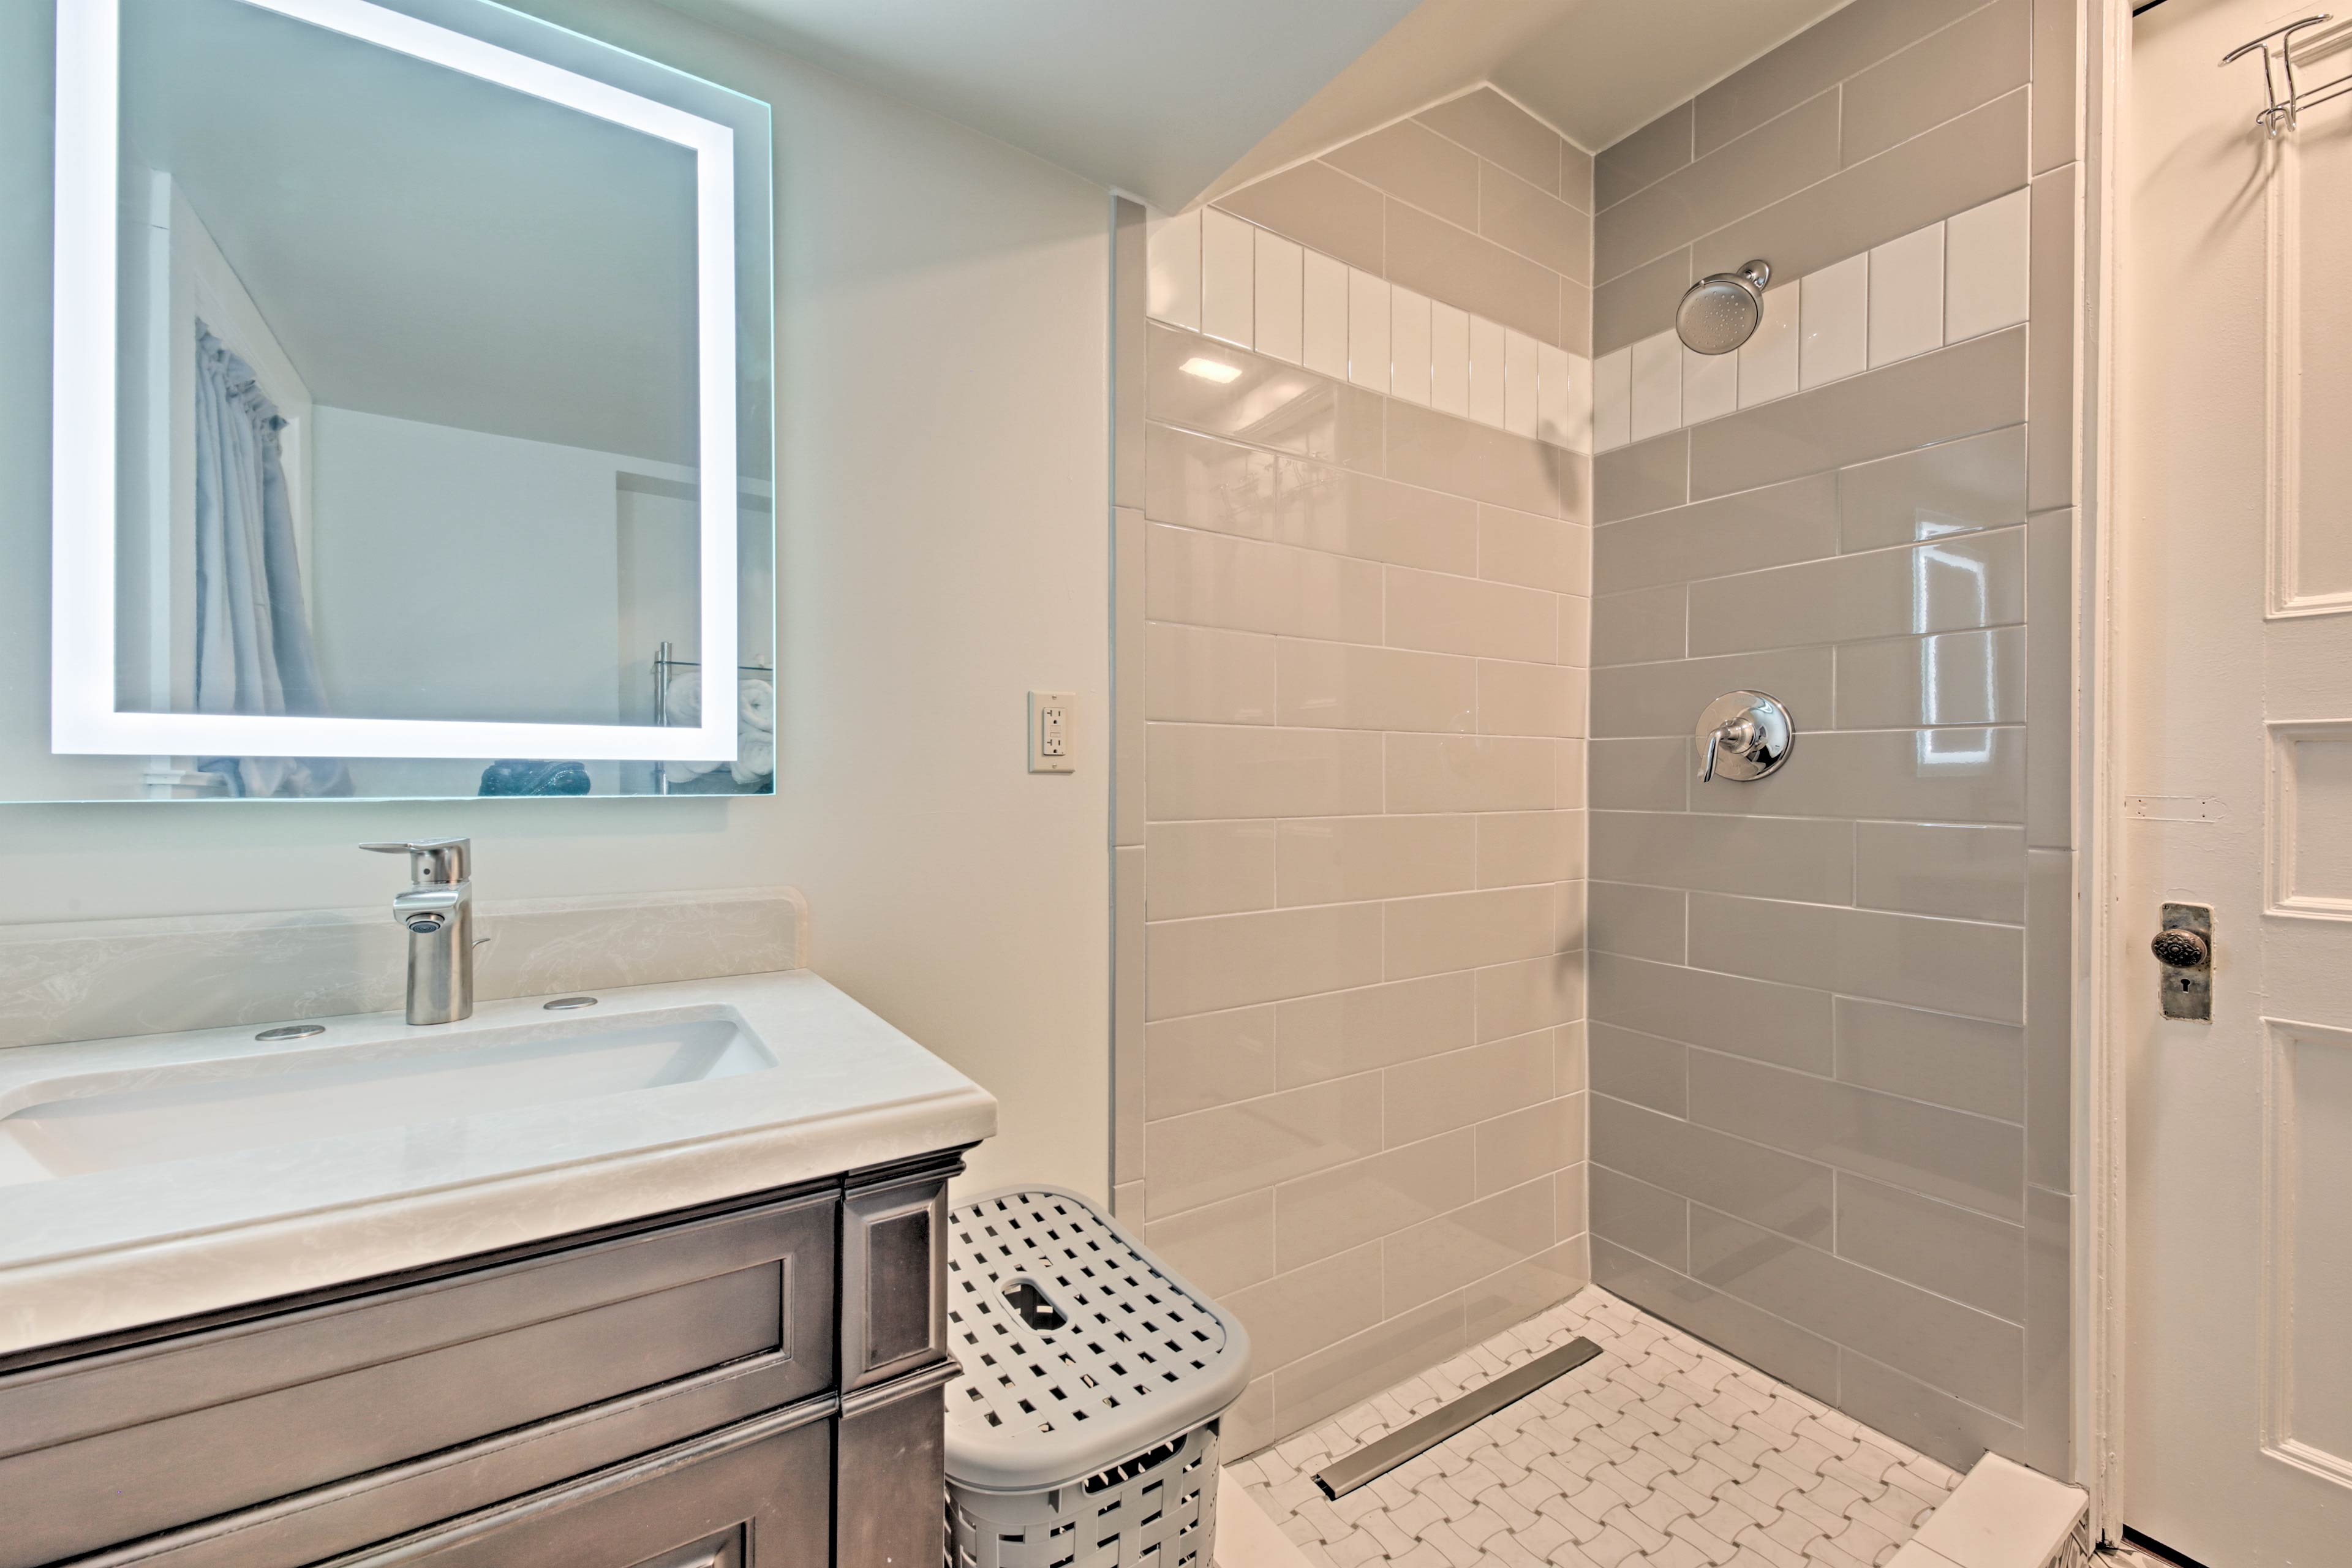 The walk-in rainhead shower is great for a quick yet refreshing rinse.